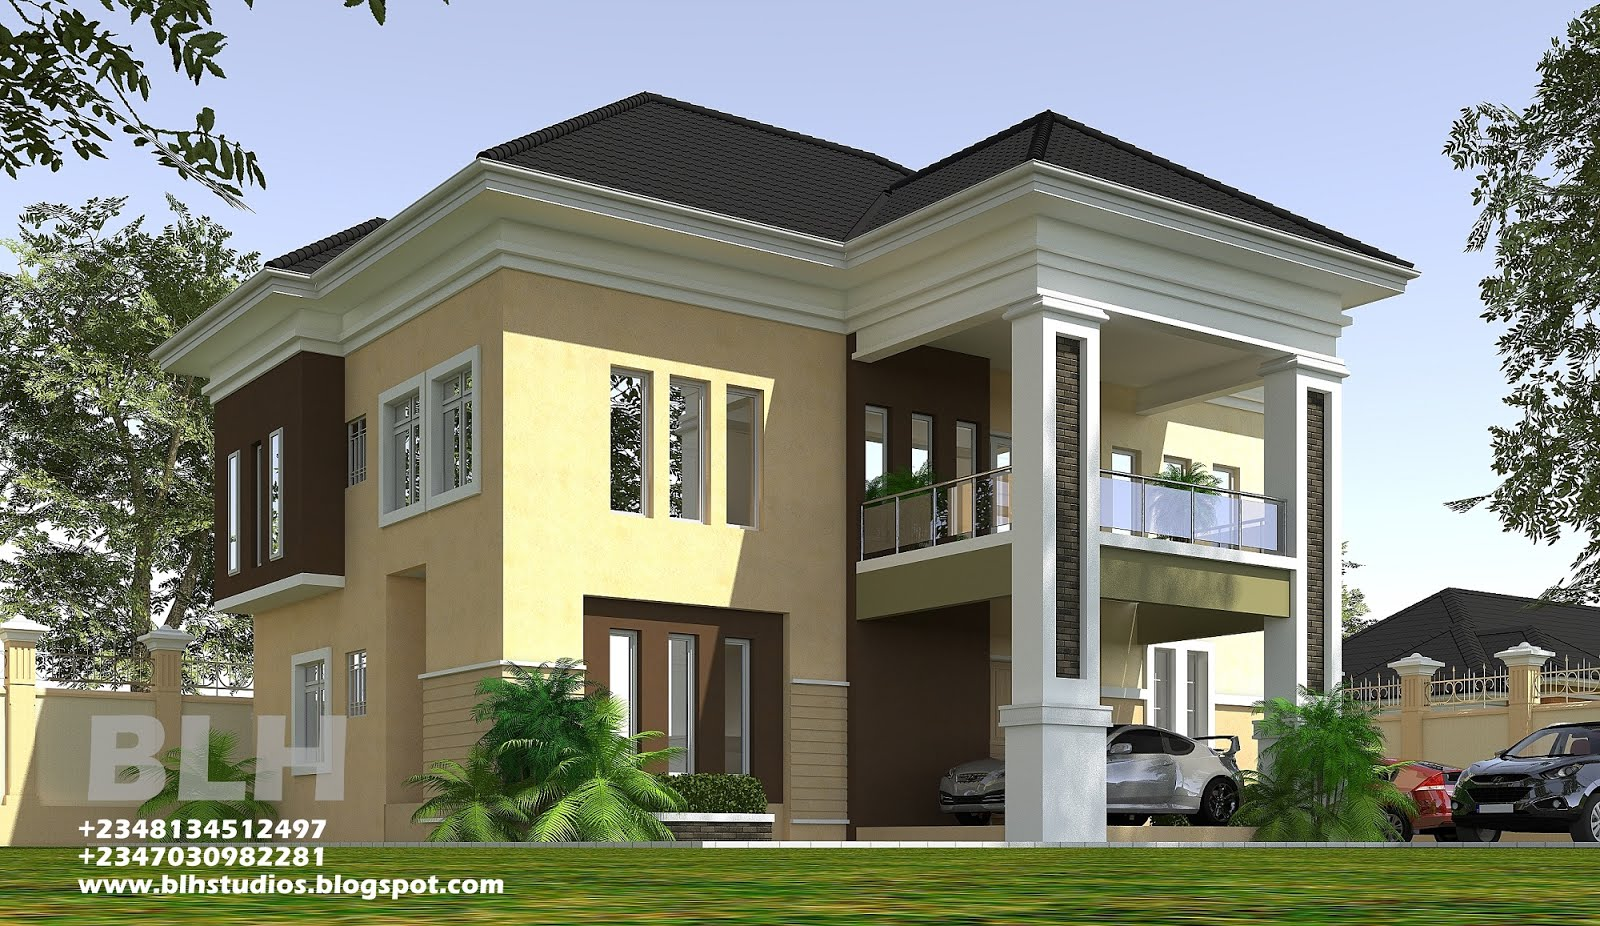 Architectural Designs by Blacklakehouse: 2 bedroom